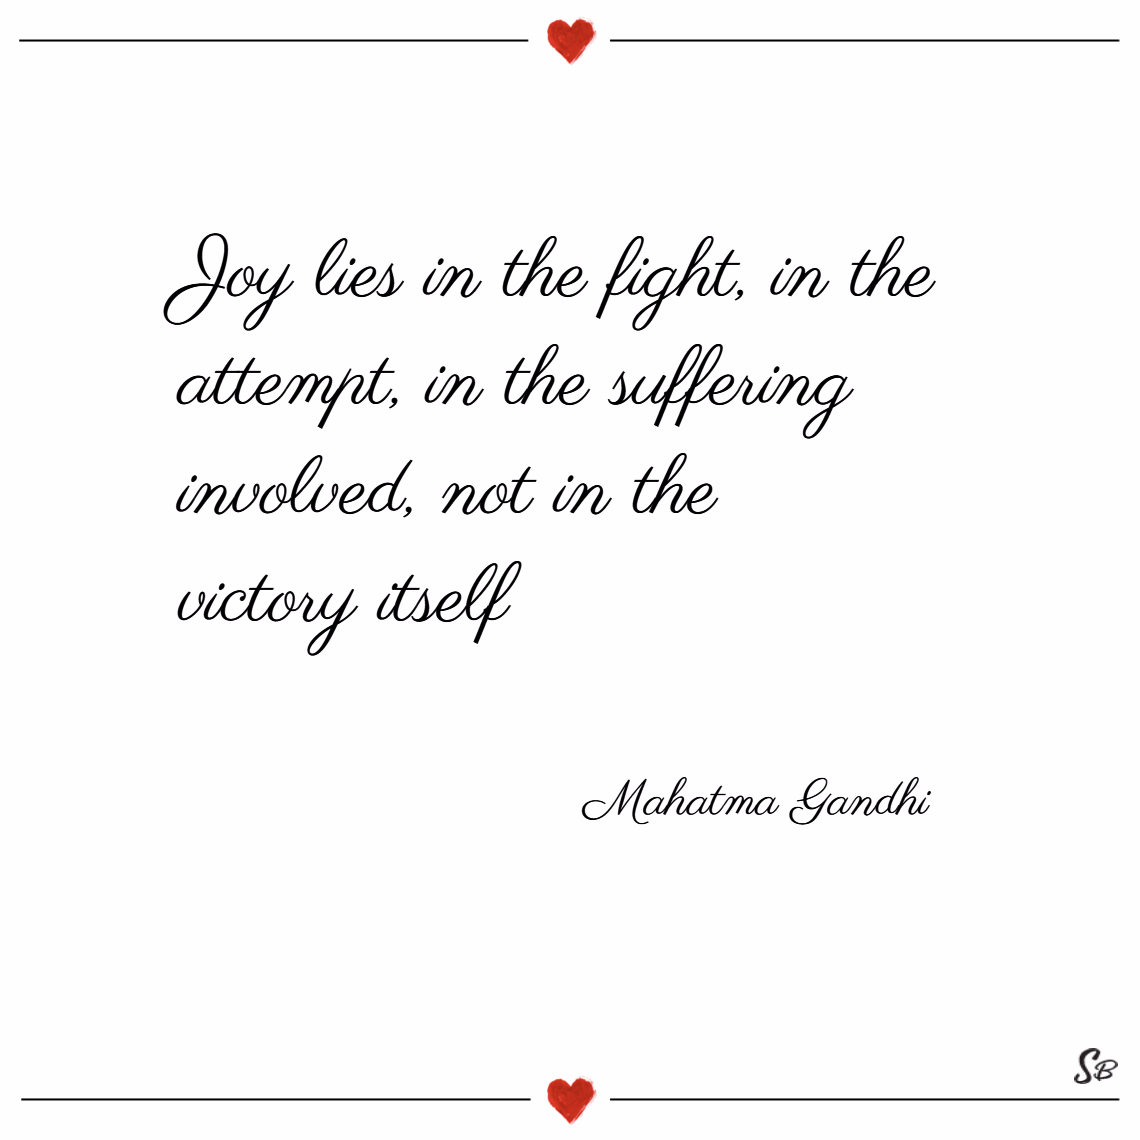 Joy lies in the fight, in the attempt, in the suffering involved, not in the victory itself. – mahatma gandhi